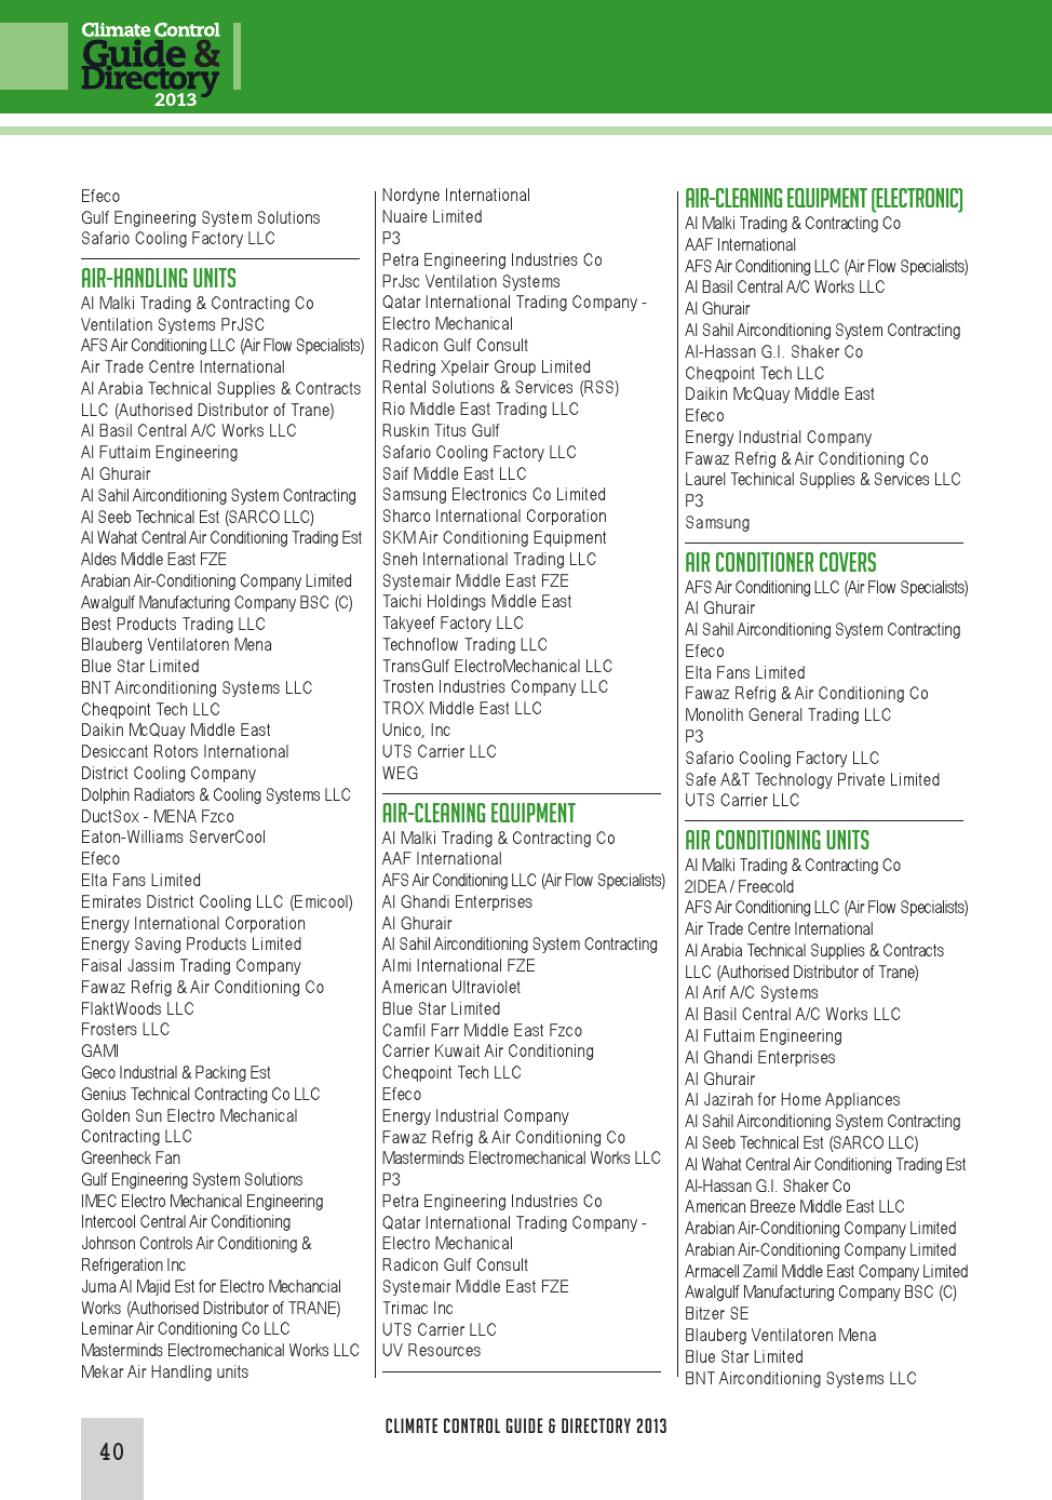 Climate Control Guide & Directory 2013 by CPI Industry - issuu